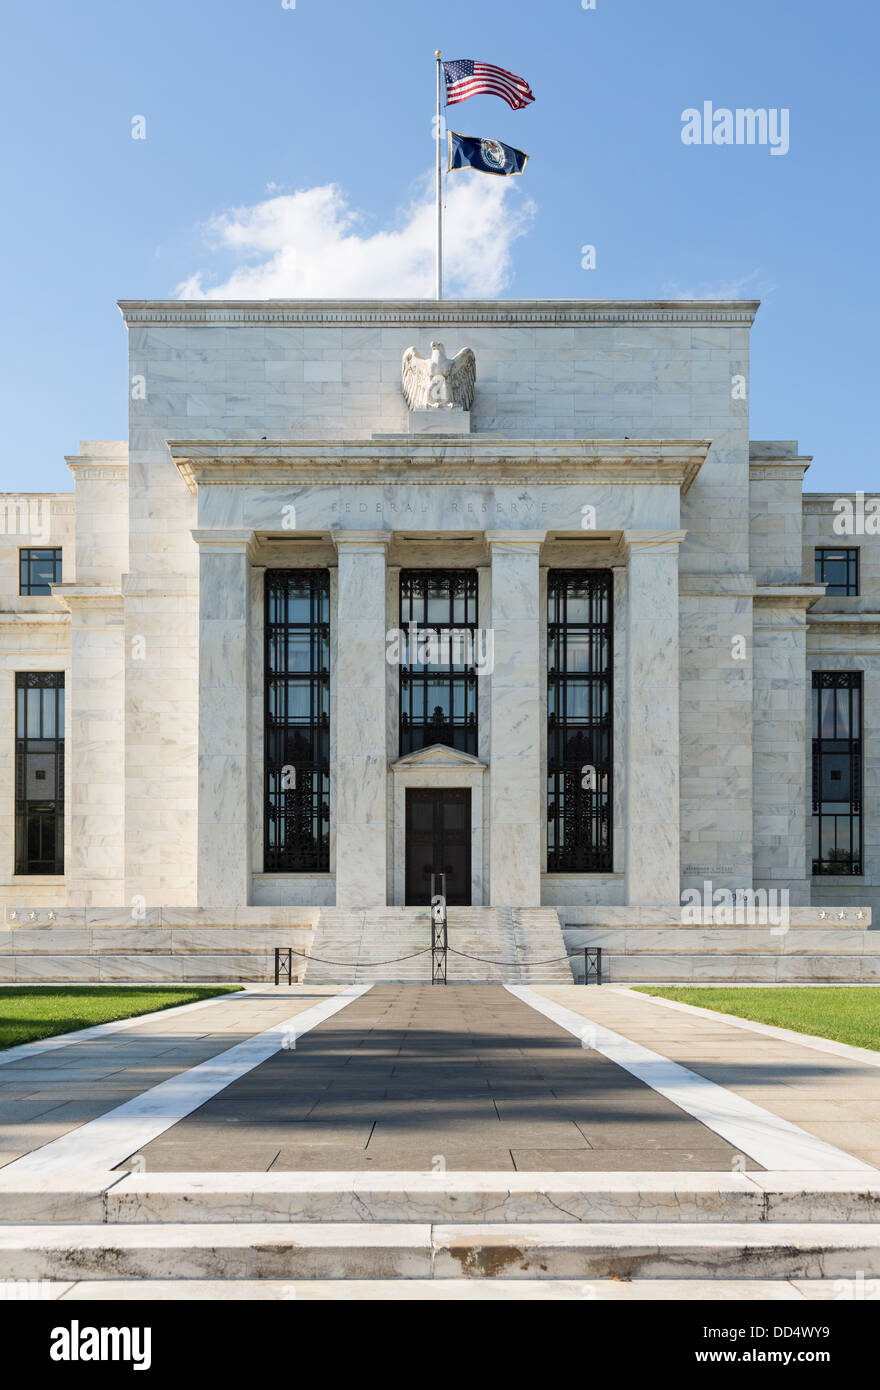 Federal Reserve building, Washington DC, USA - Stock Image